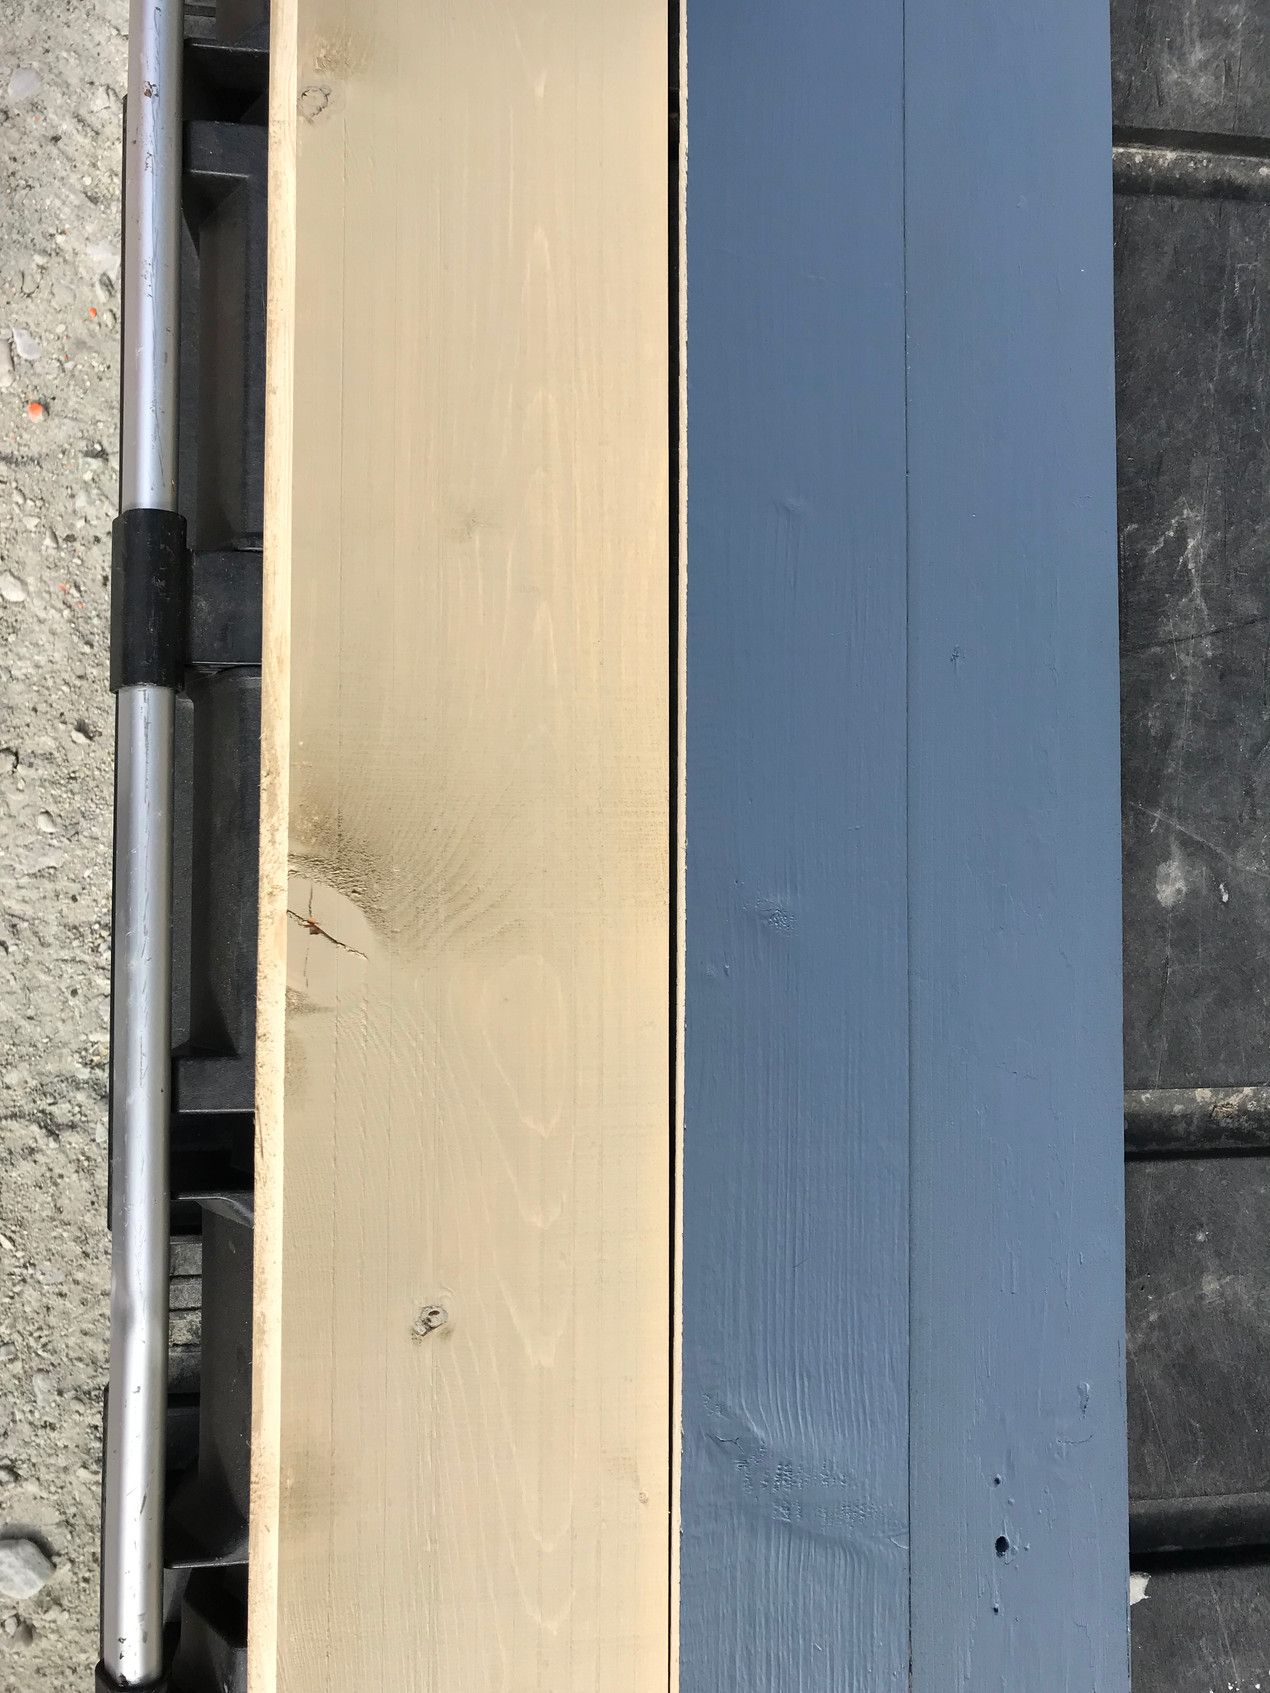 New siding colour is terra firma, an off yellow colour. The new exterior trim colour is called cannon, a blue grey.